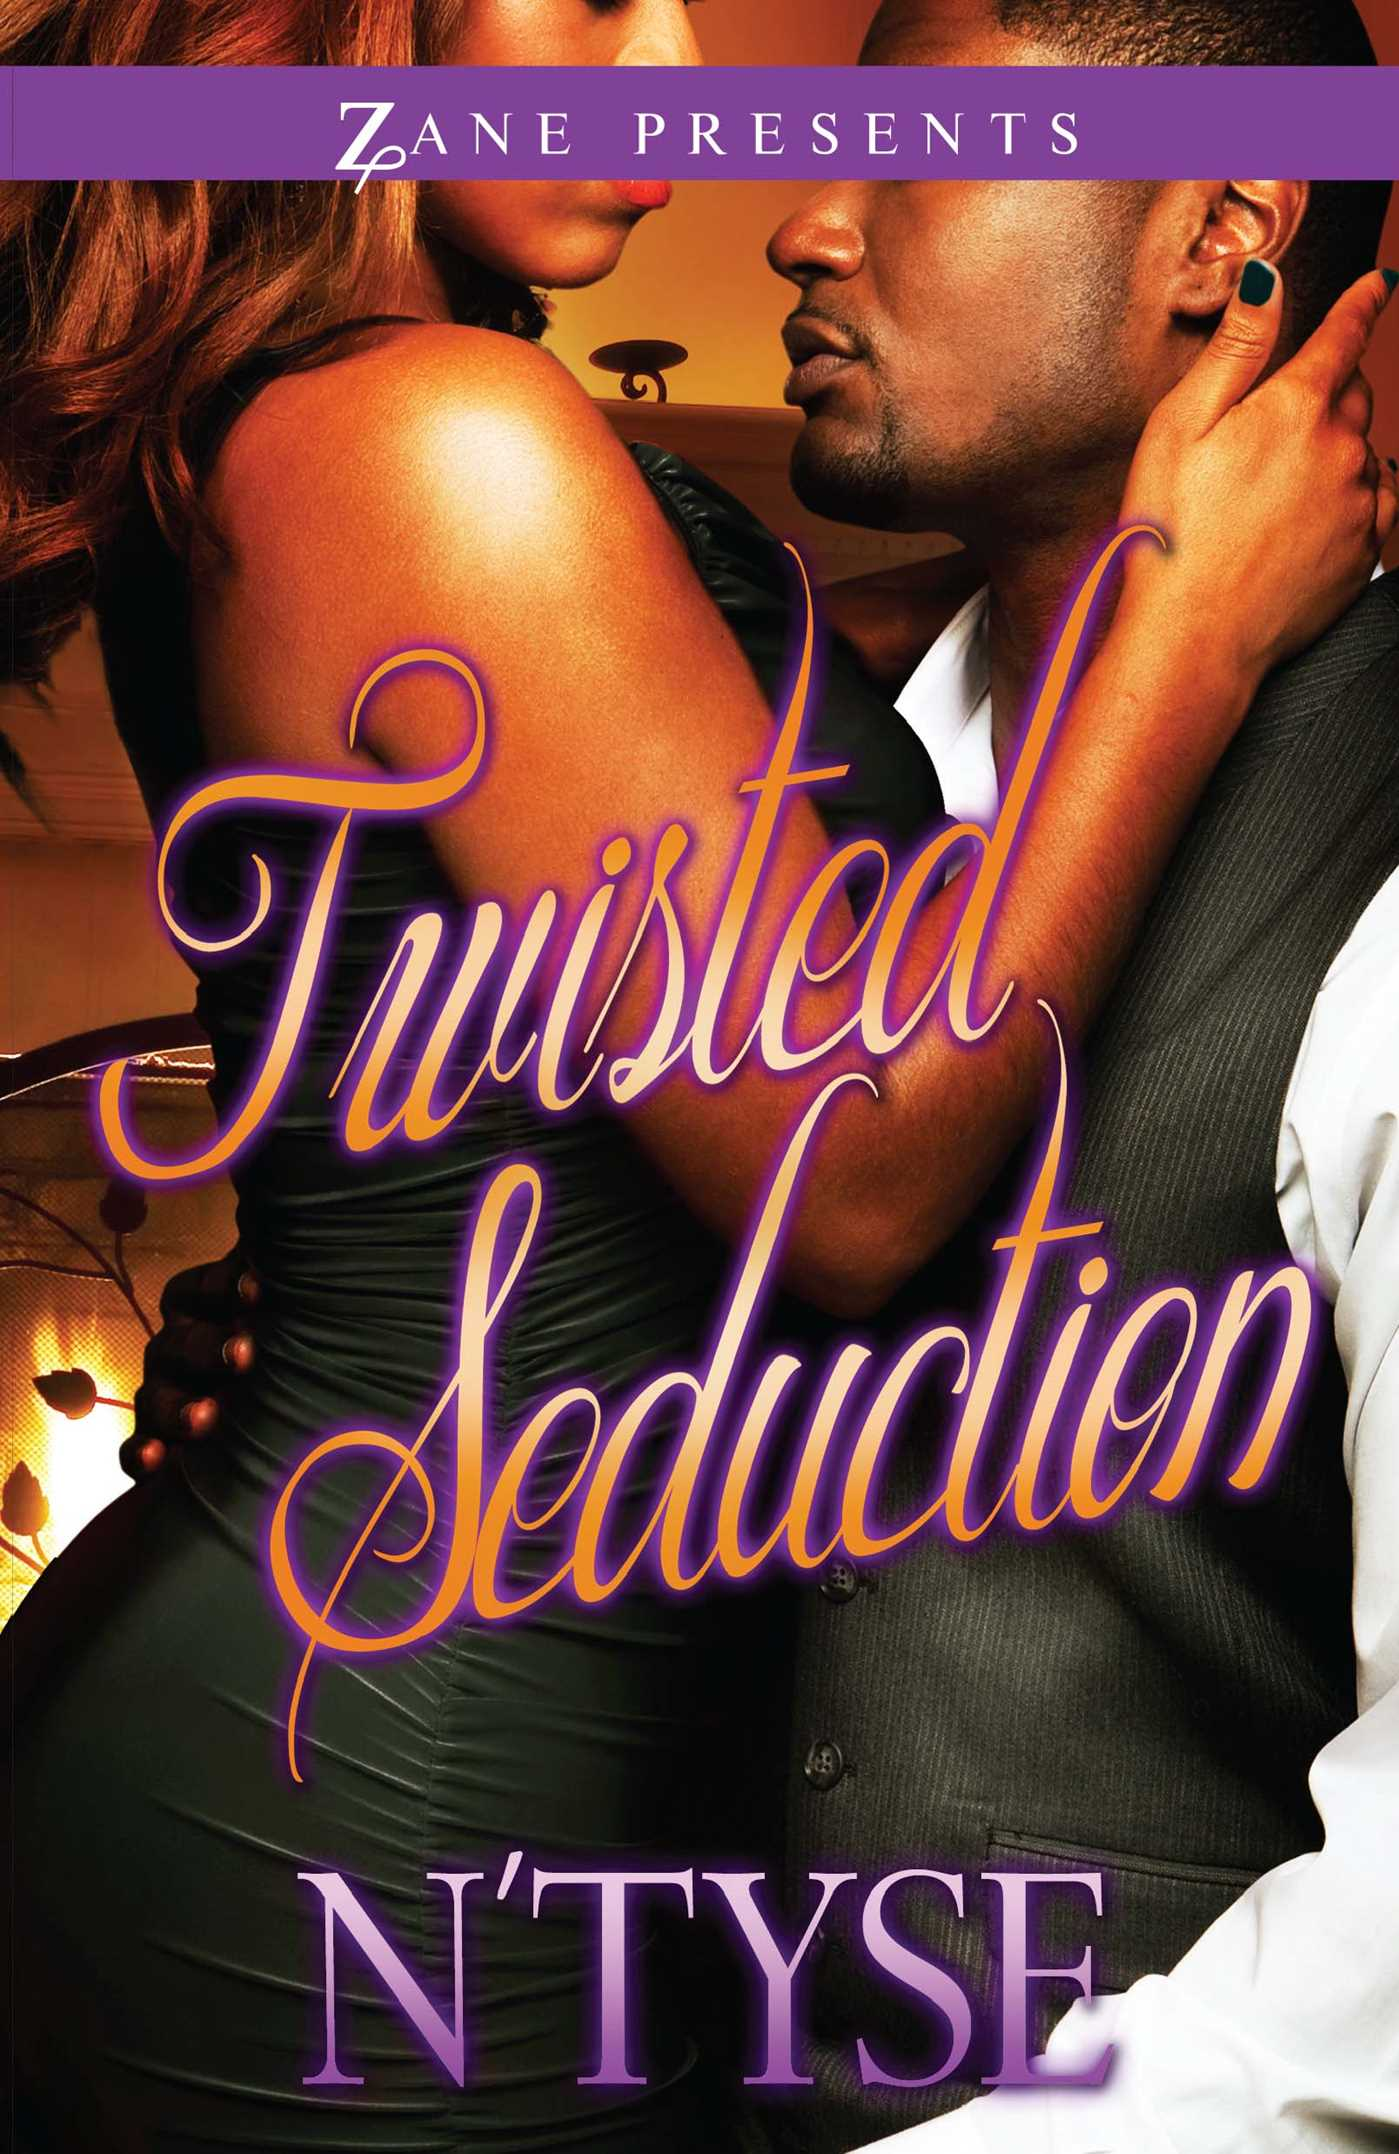 Twisted-seduction-9781593093952_hr